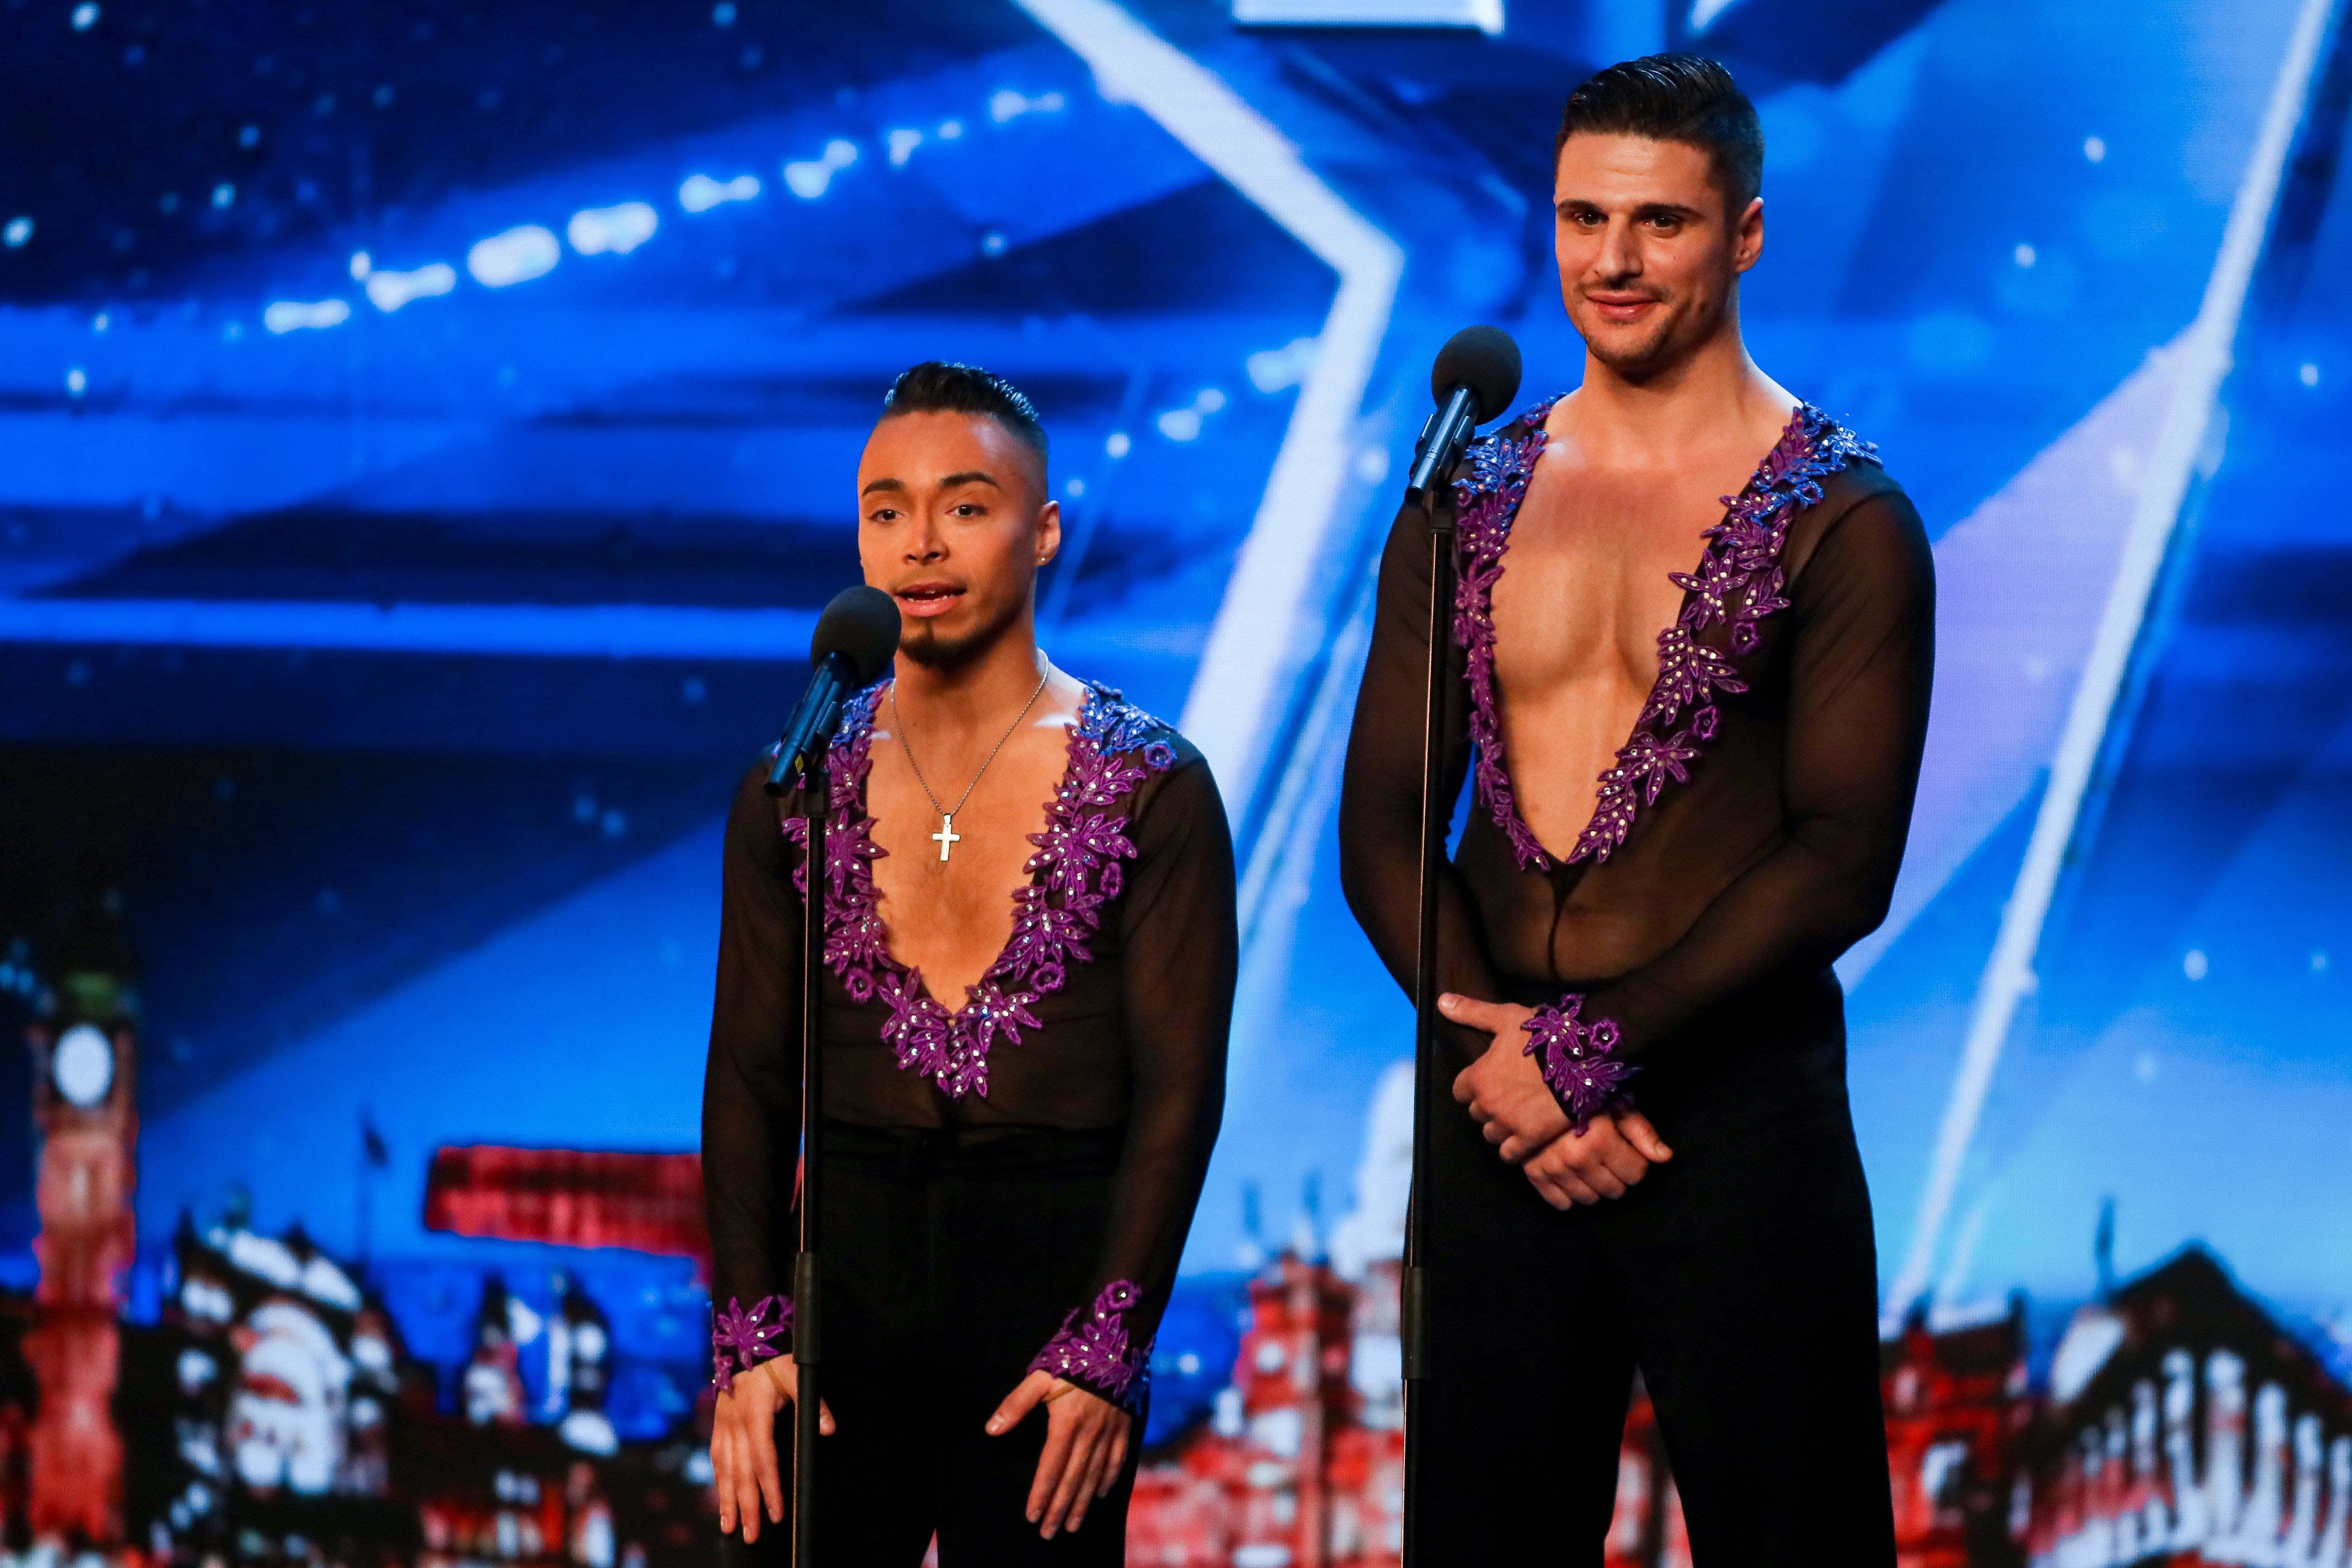 'BGT' Dancers Are Proof 'Strictly' Should Allow Same-Sex Couples, Says David